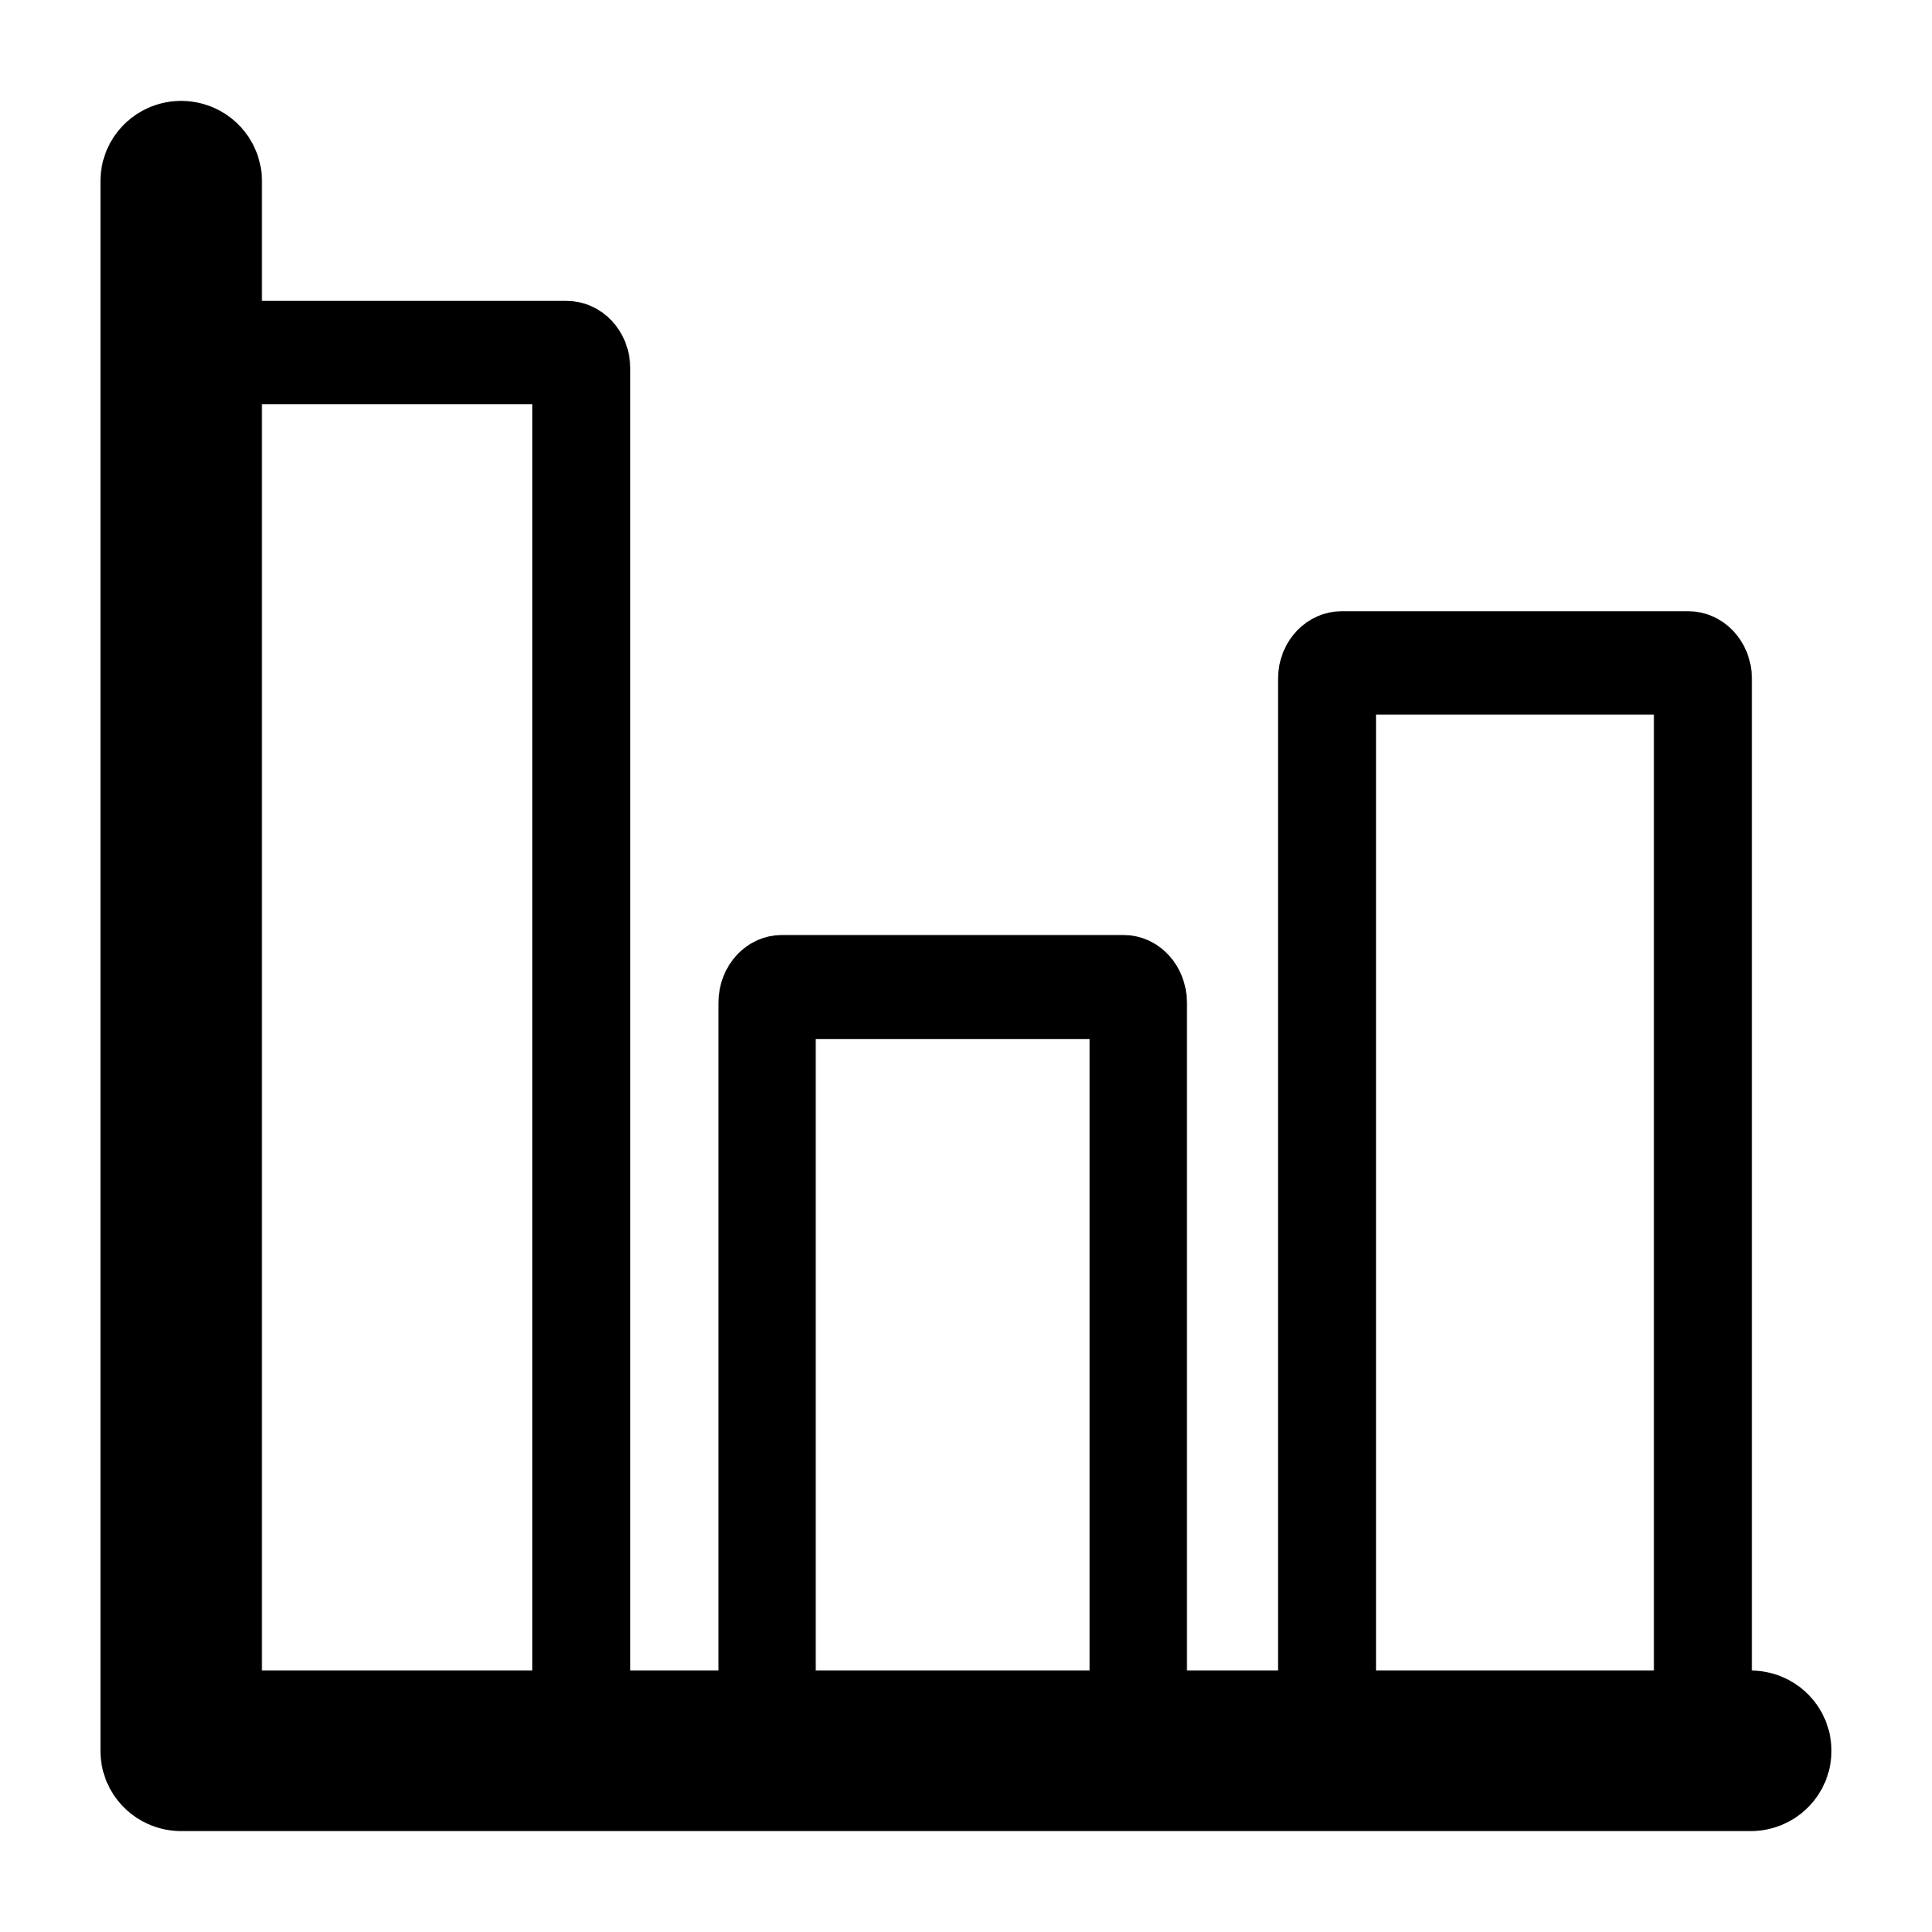 png transparent library Statistics clipart black and white. Mono chart bar big